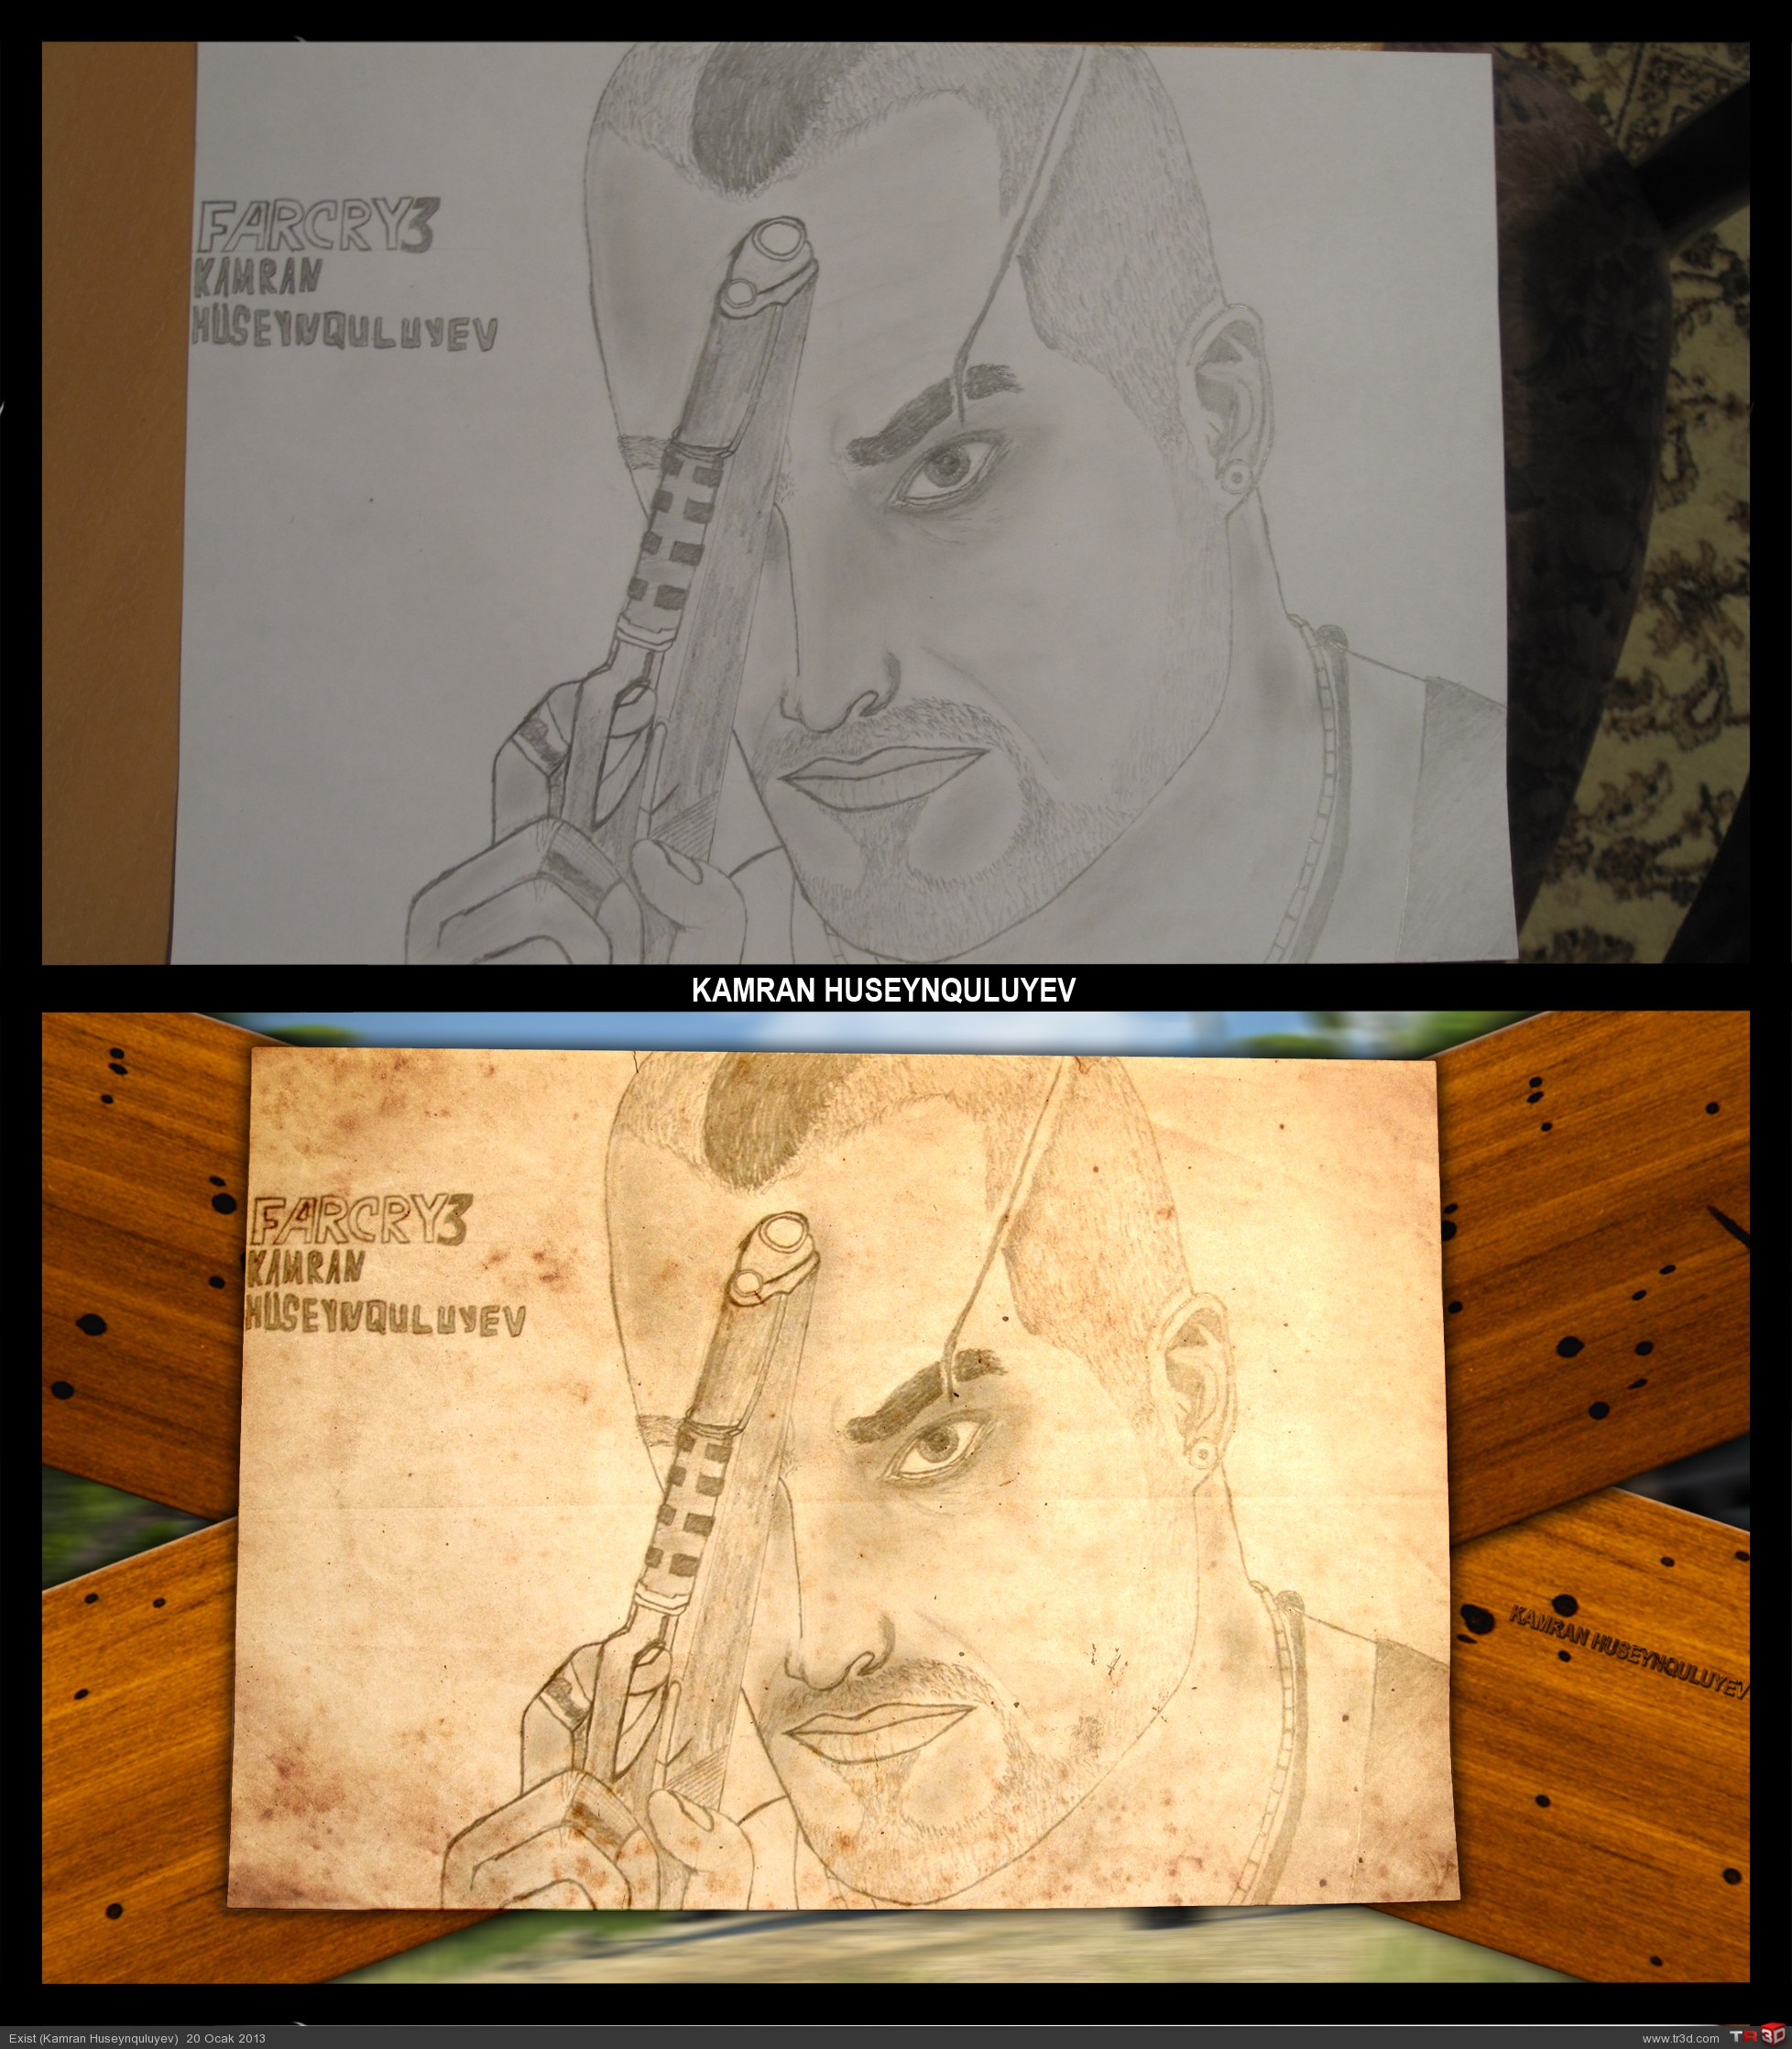 Far Cry 3 (VAAS) 2